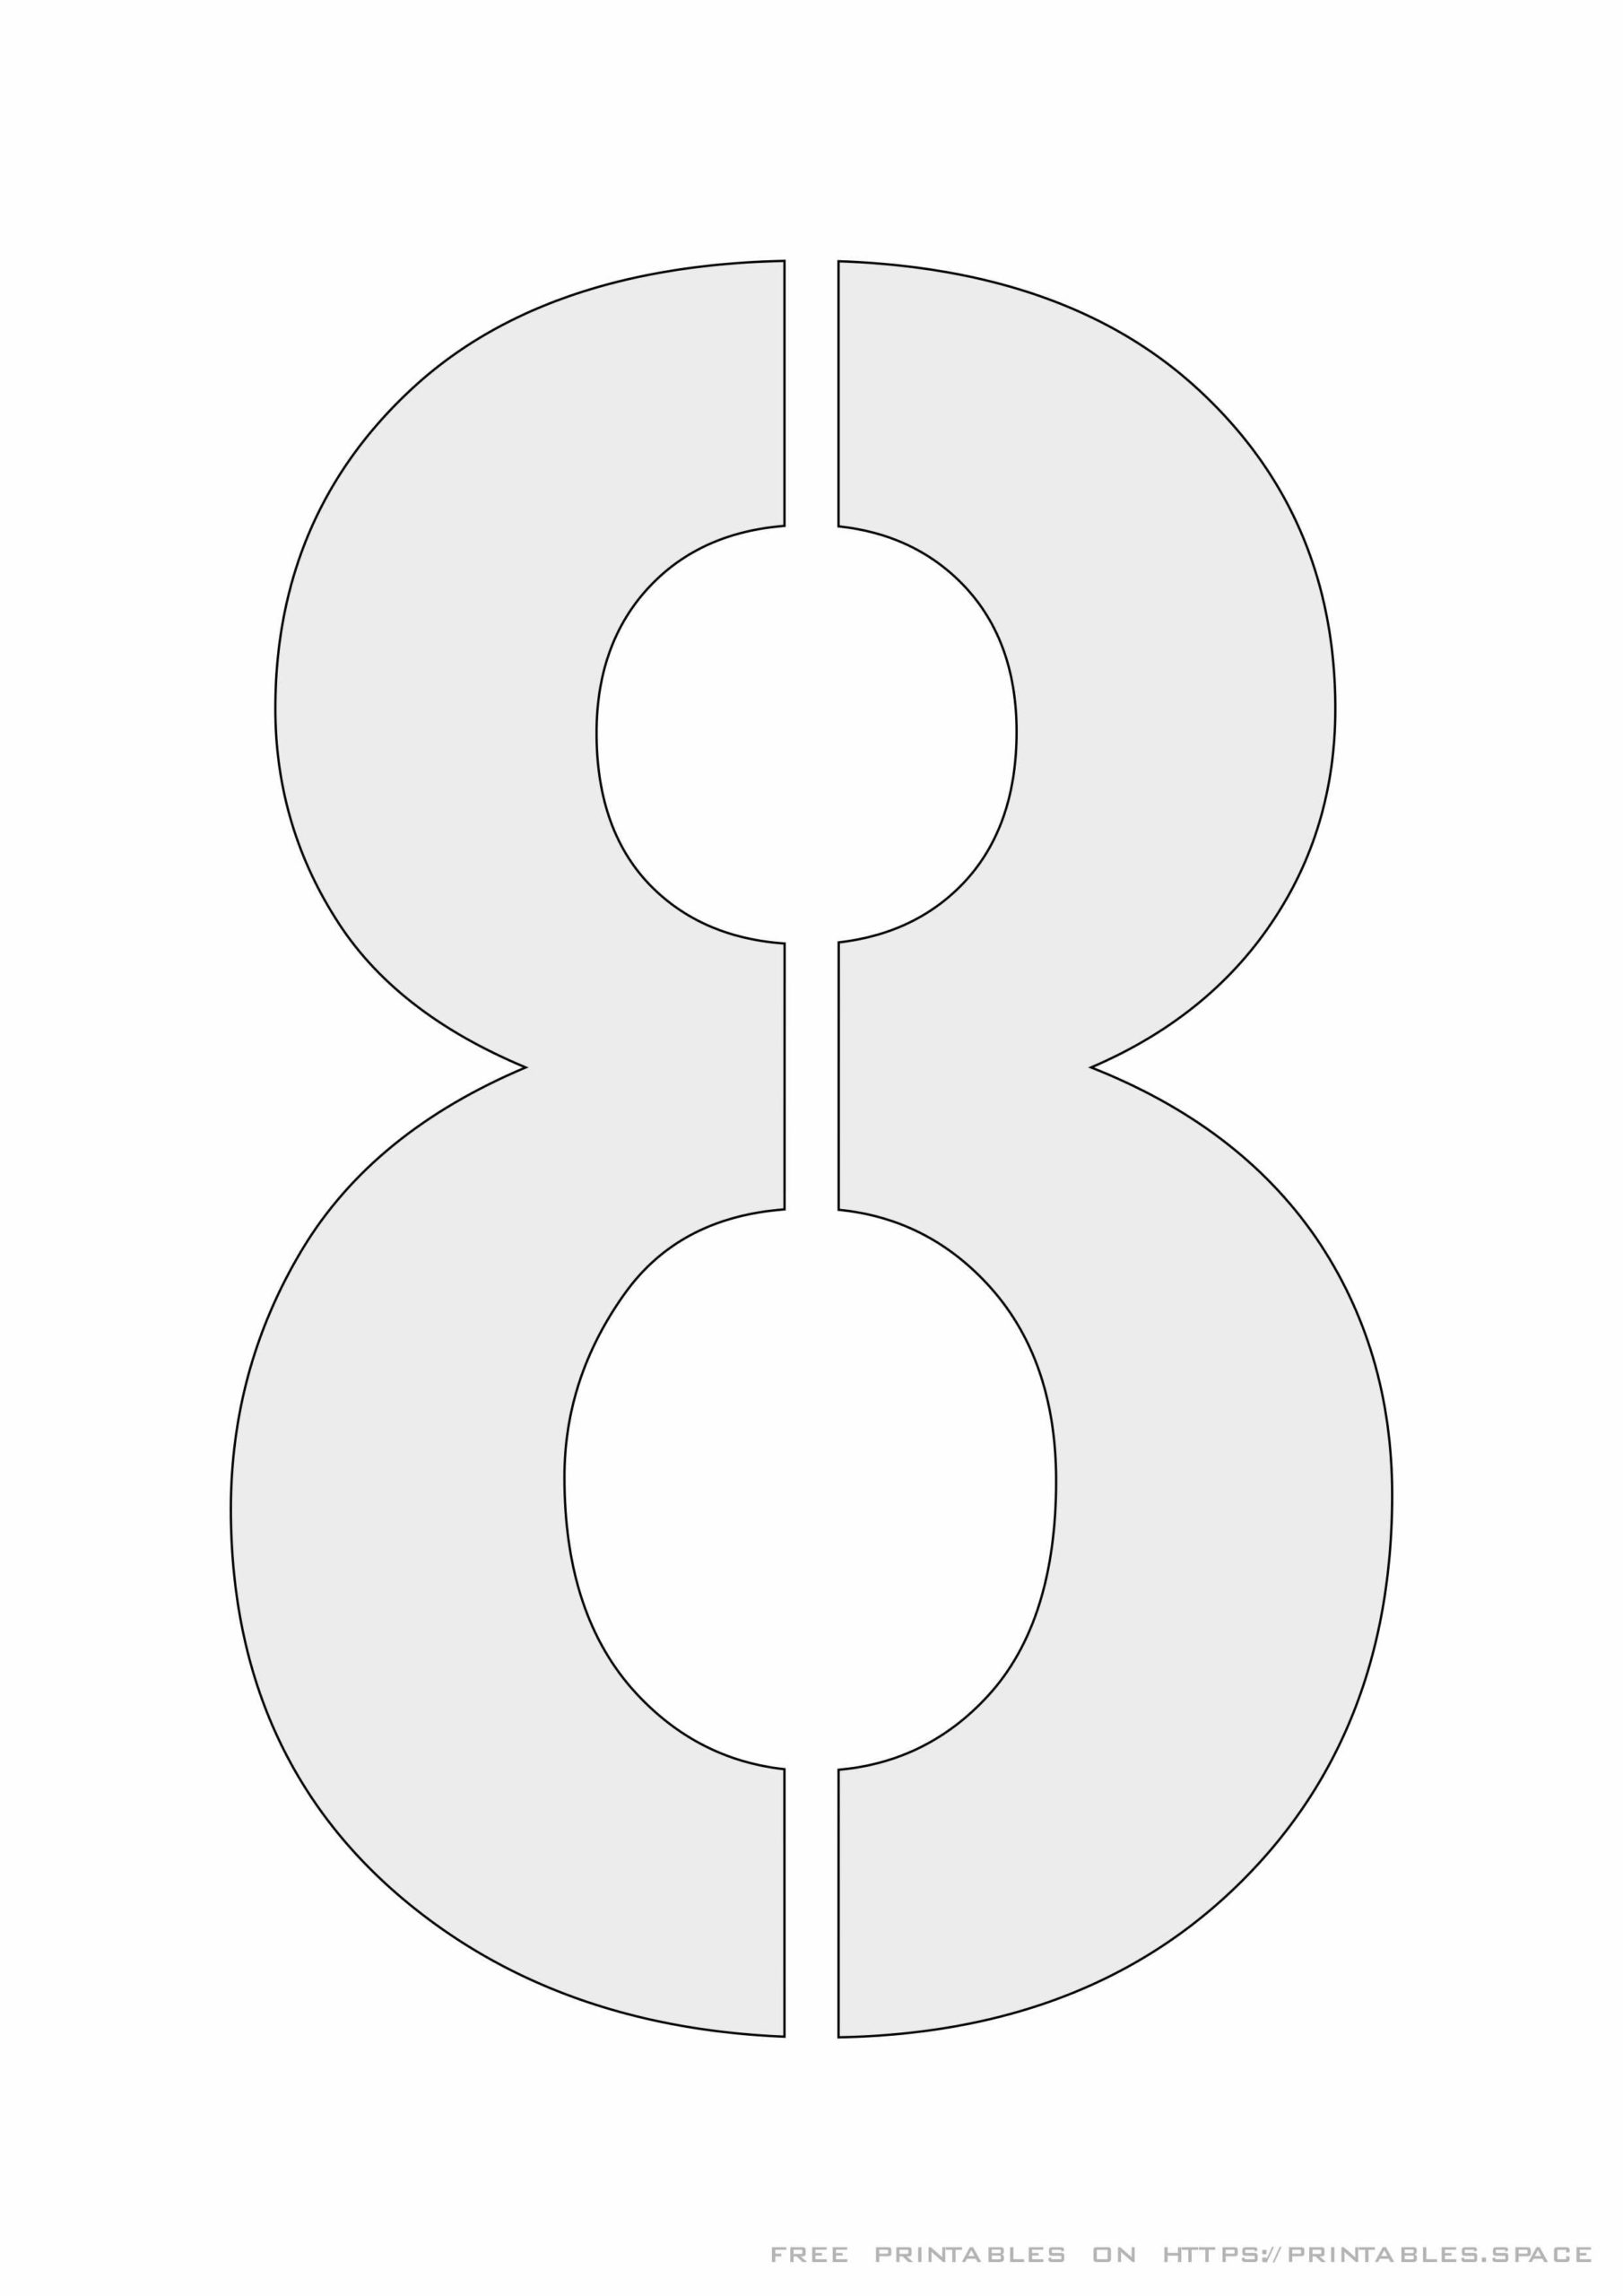 Printable Stencil Number 8 For Cut Out And Painting Free